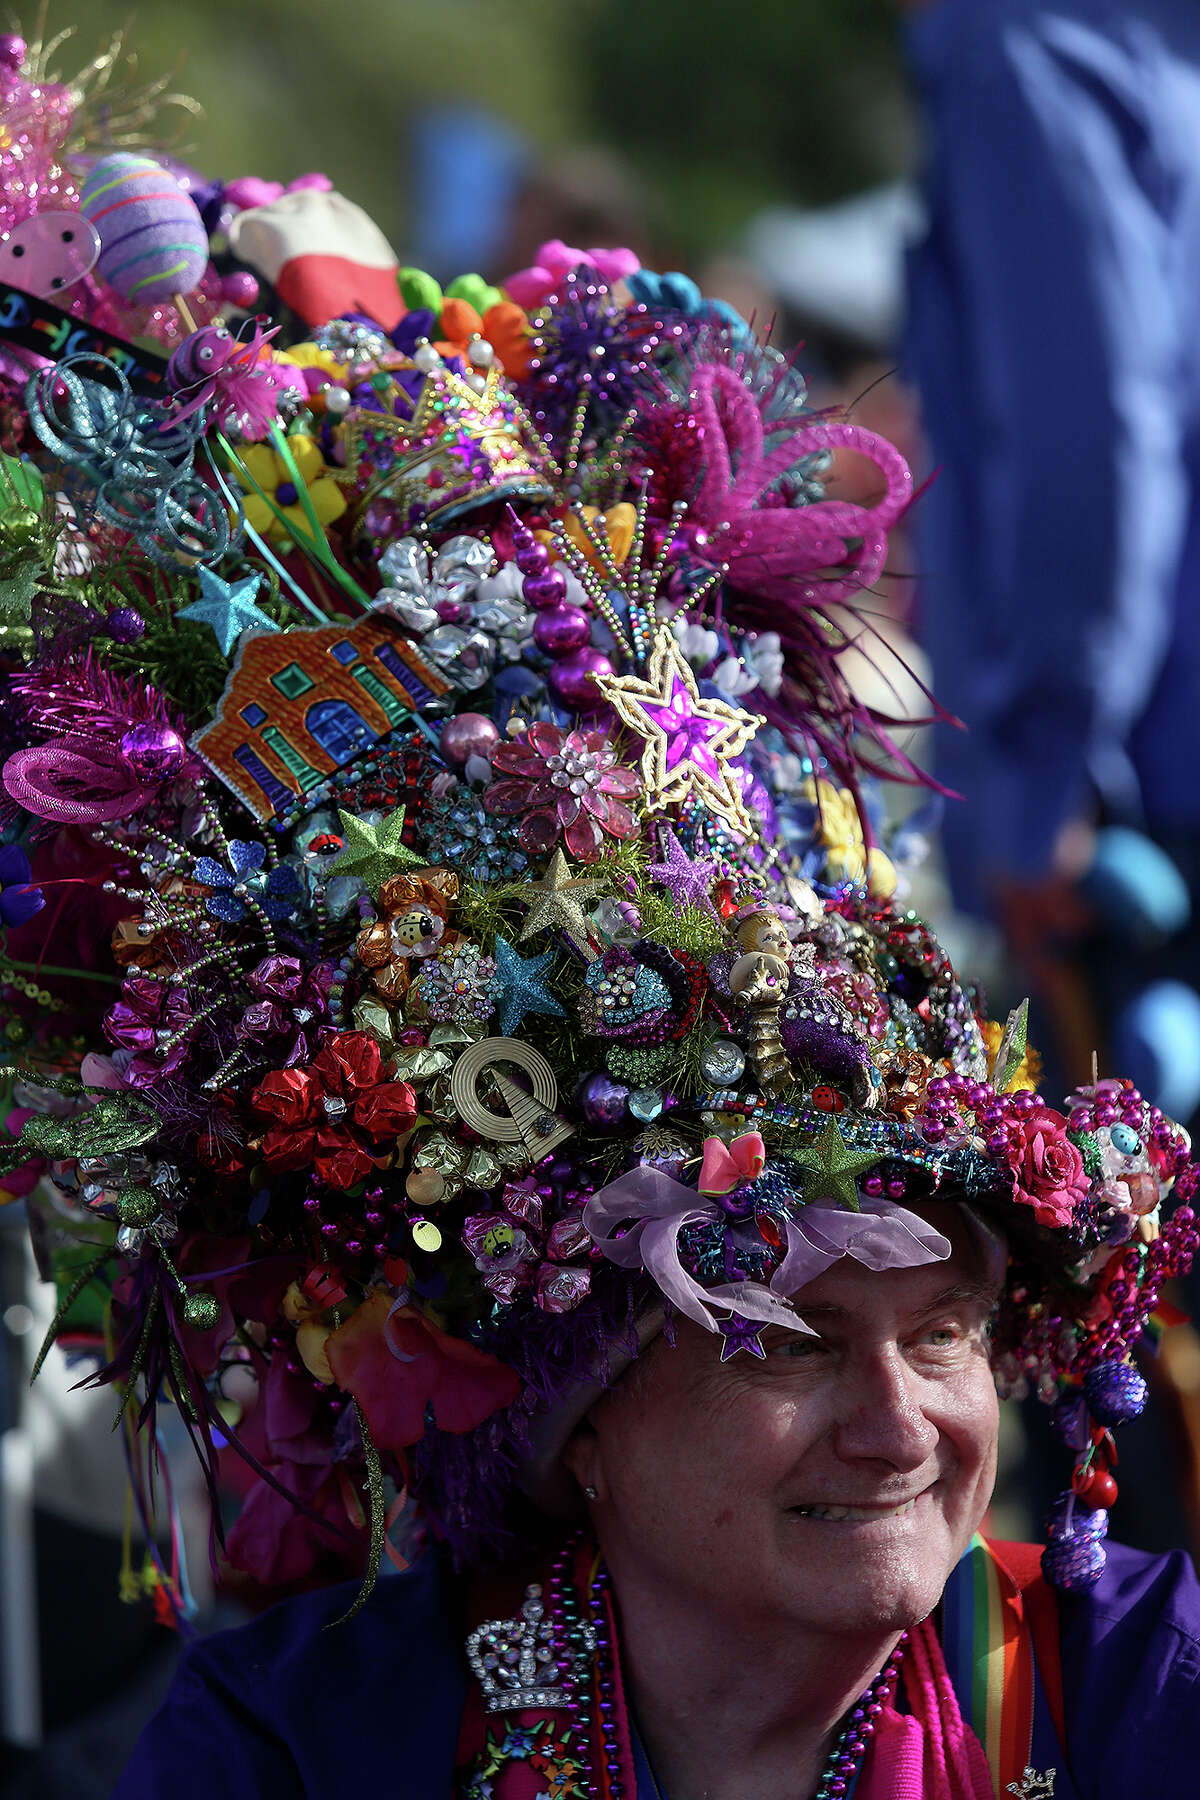 2. Fiesta hat royalty, like Cal Sumner and...